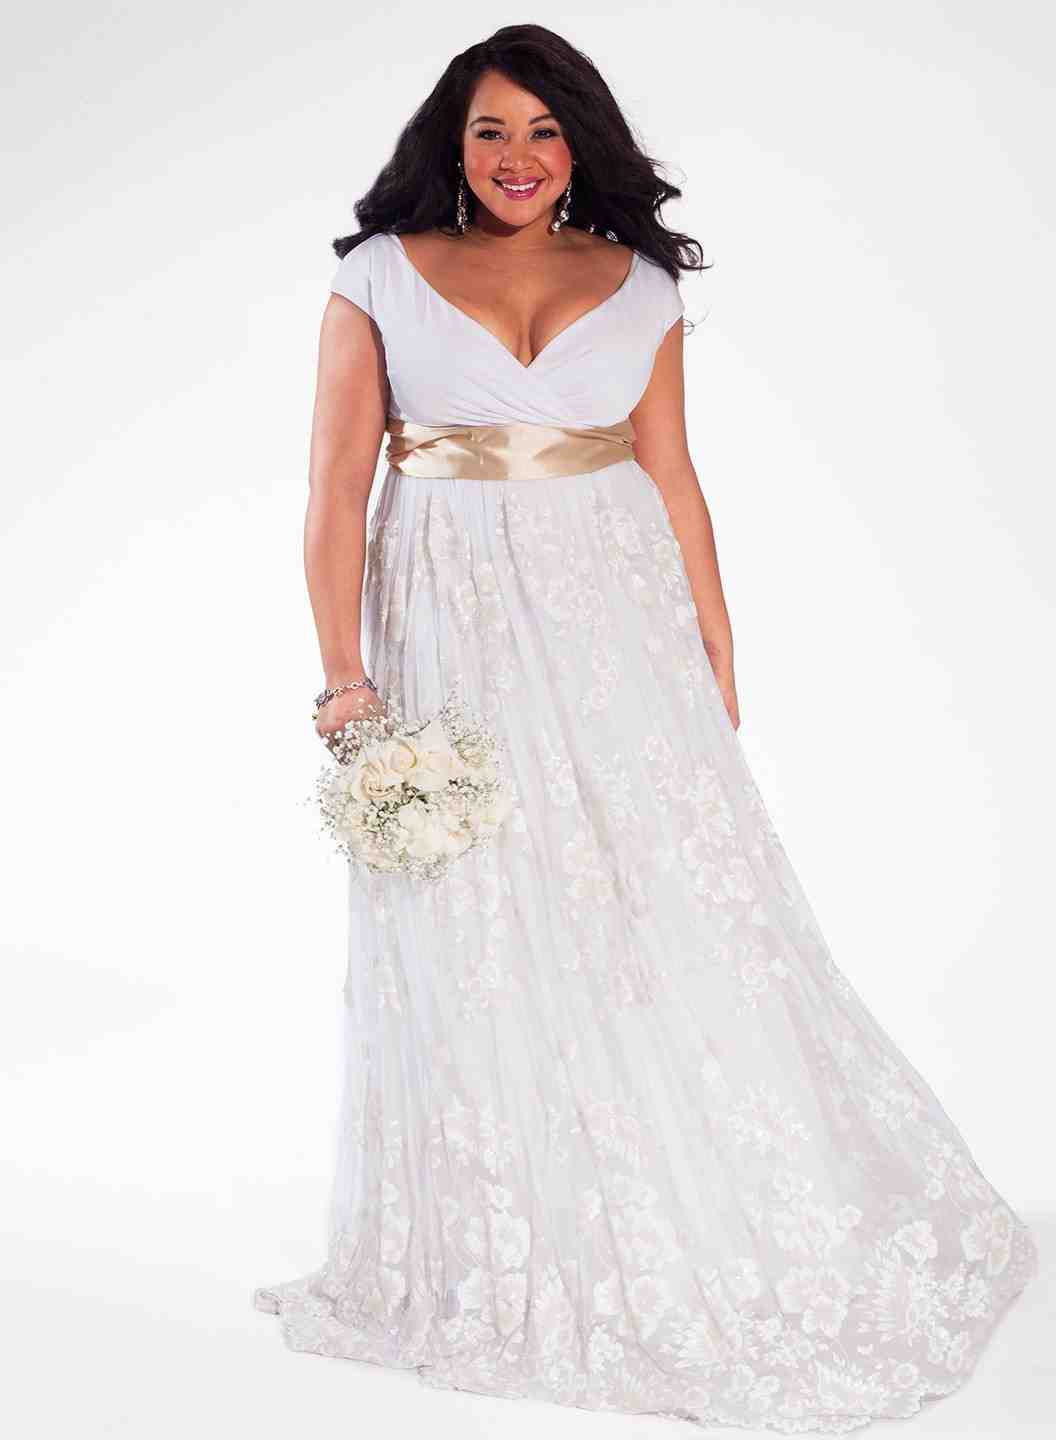 Plus Size Wedding Dresses: How to Choose to Flatter Your ...